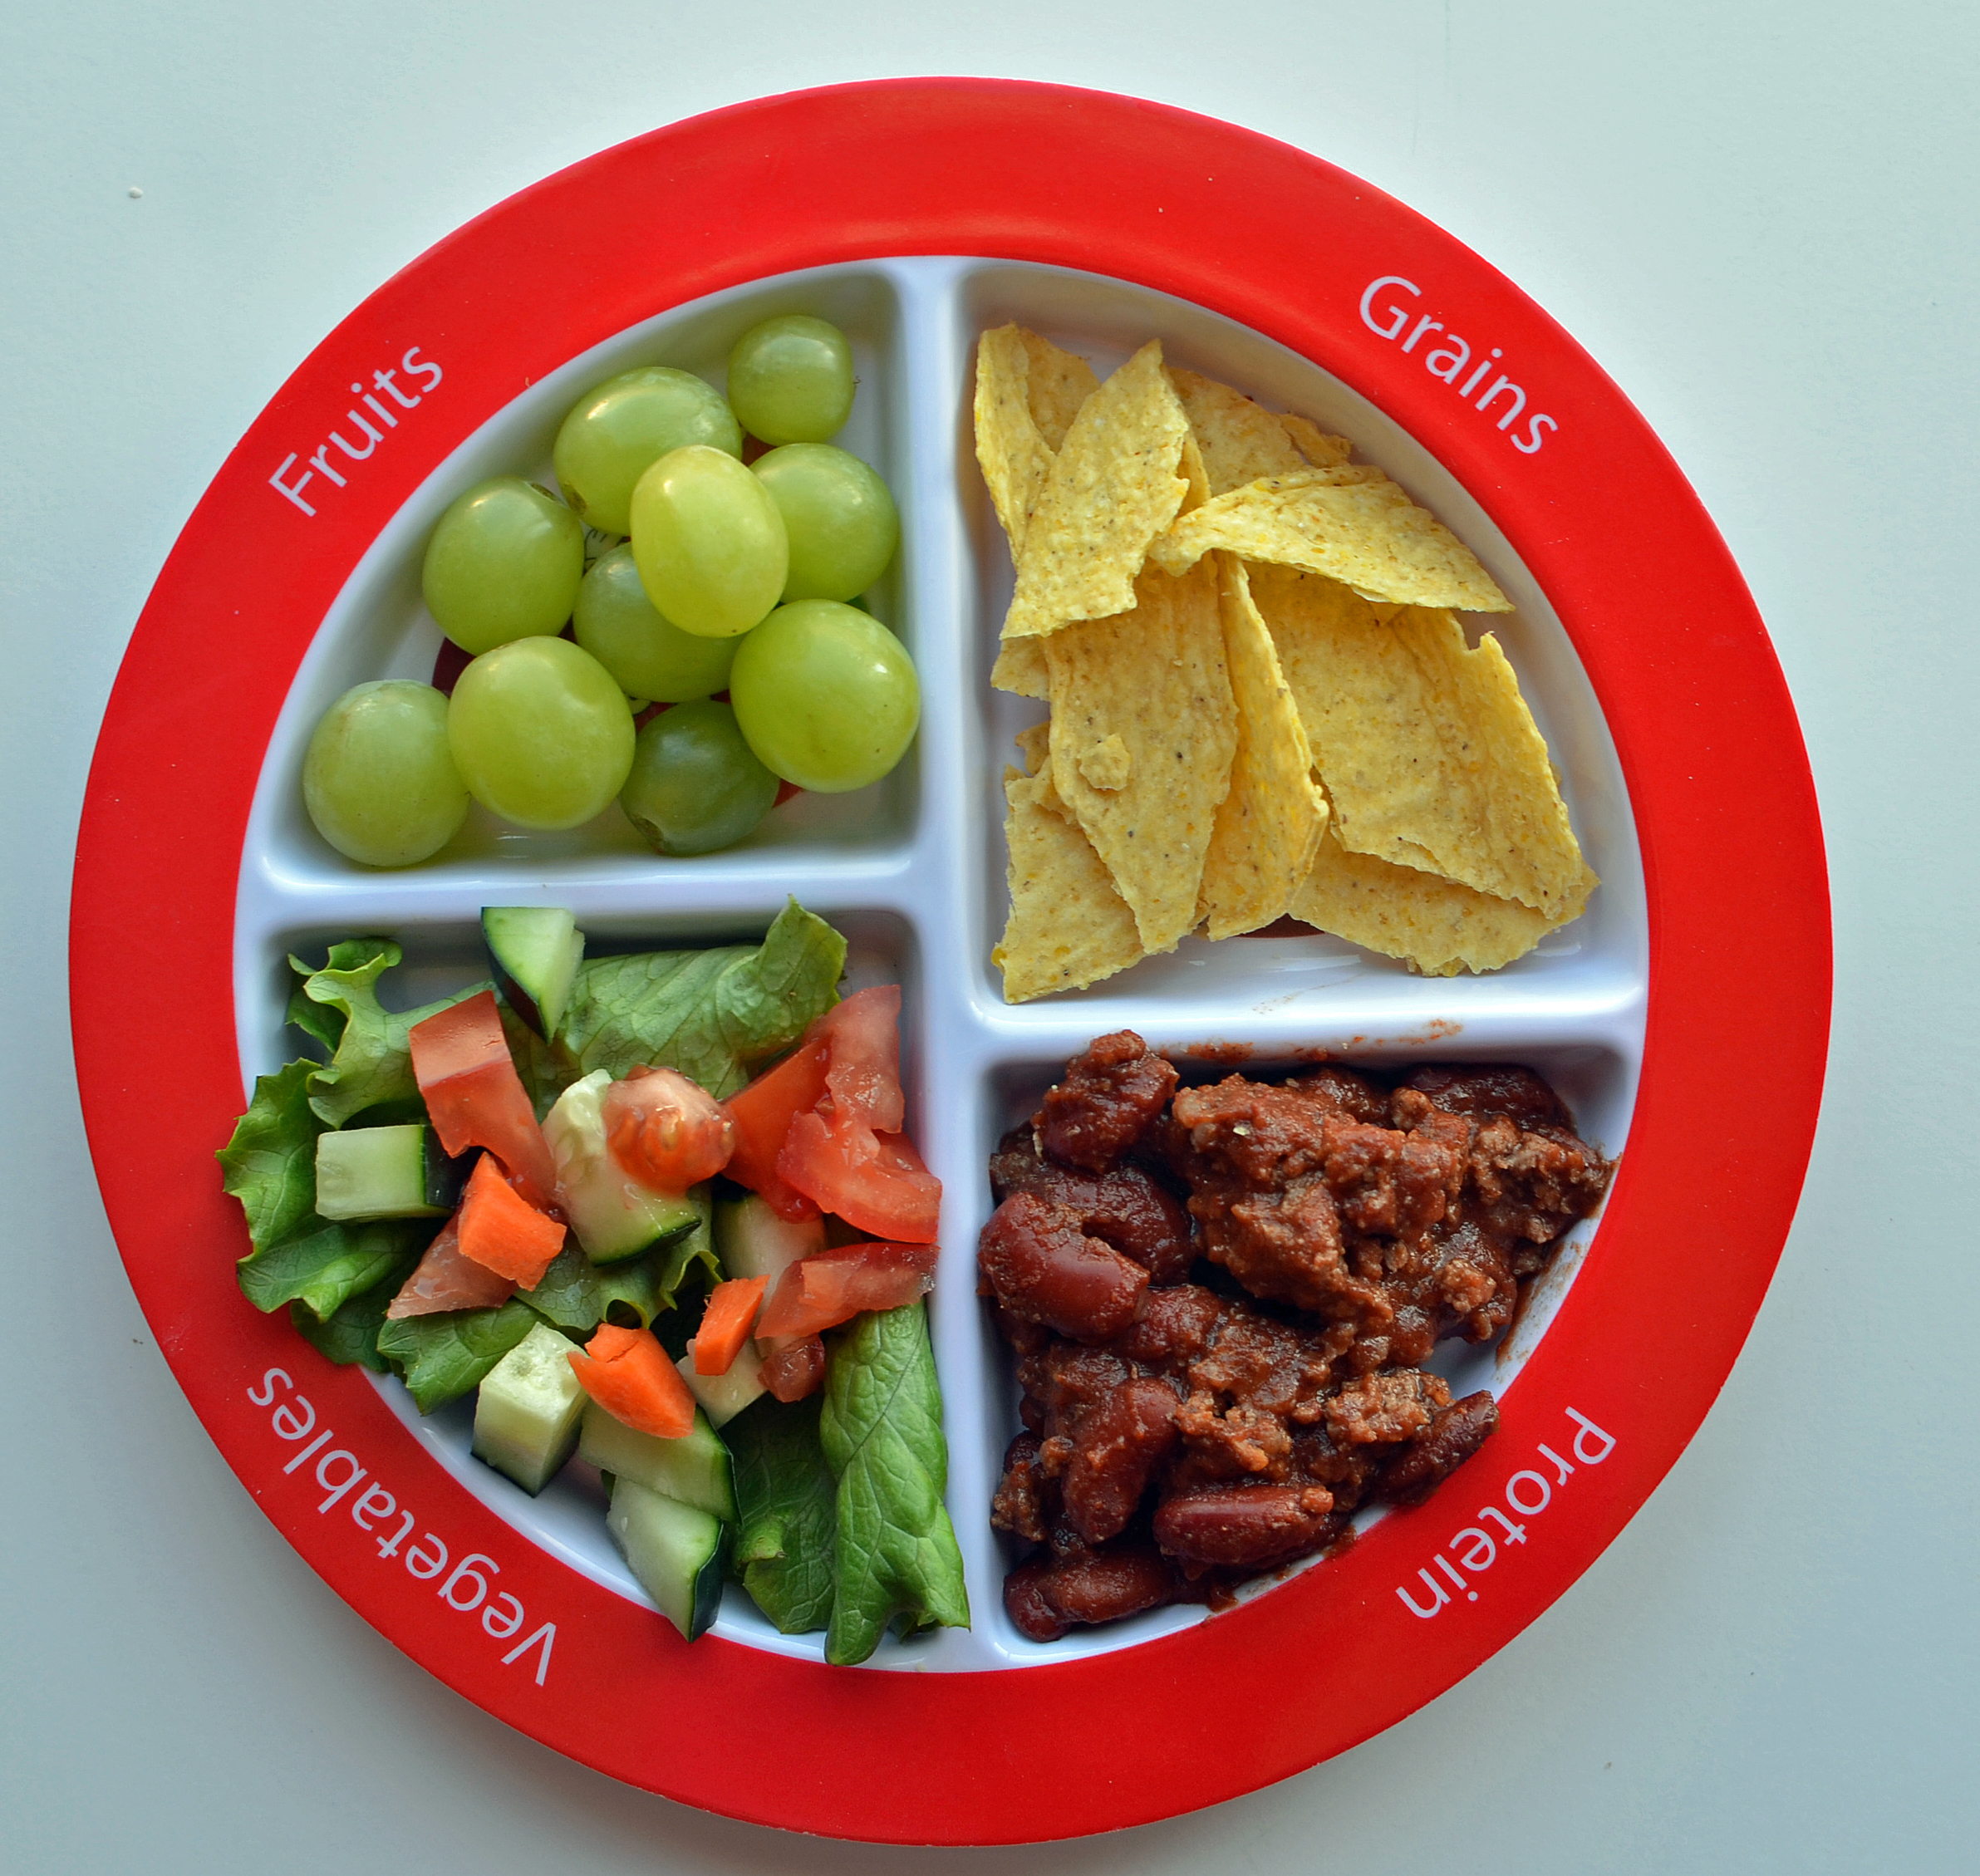 MyPlate and Healthy Eating Habits Learn it the FUN WAY! On this page you will find online games and other interesting stuff that will teach you how to make